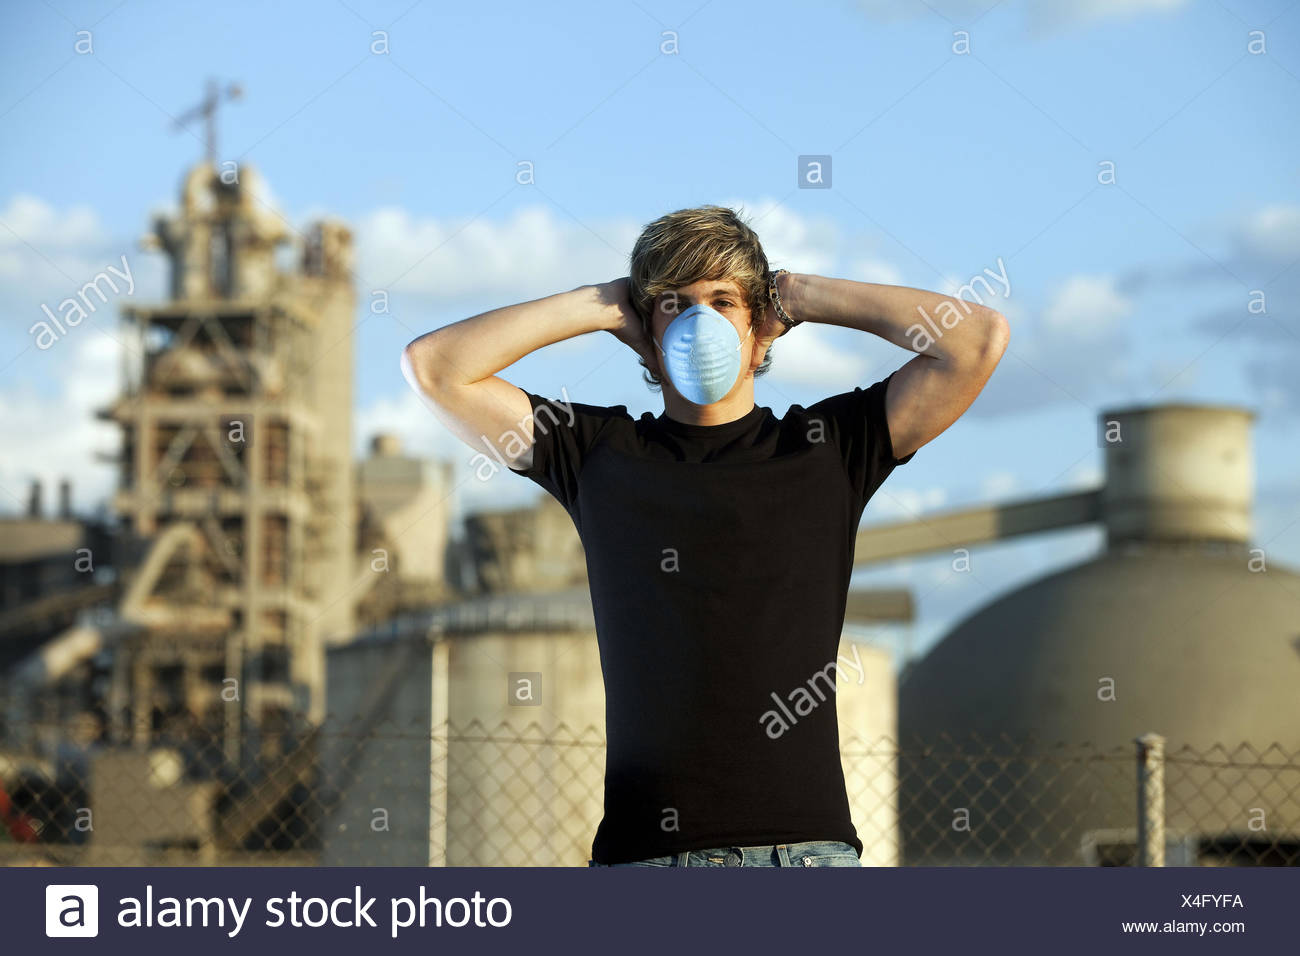 Man with a contamination mask near a cement works - Stock Image